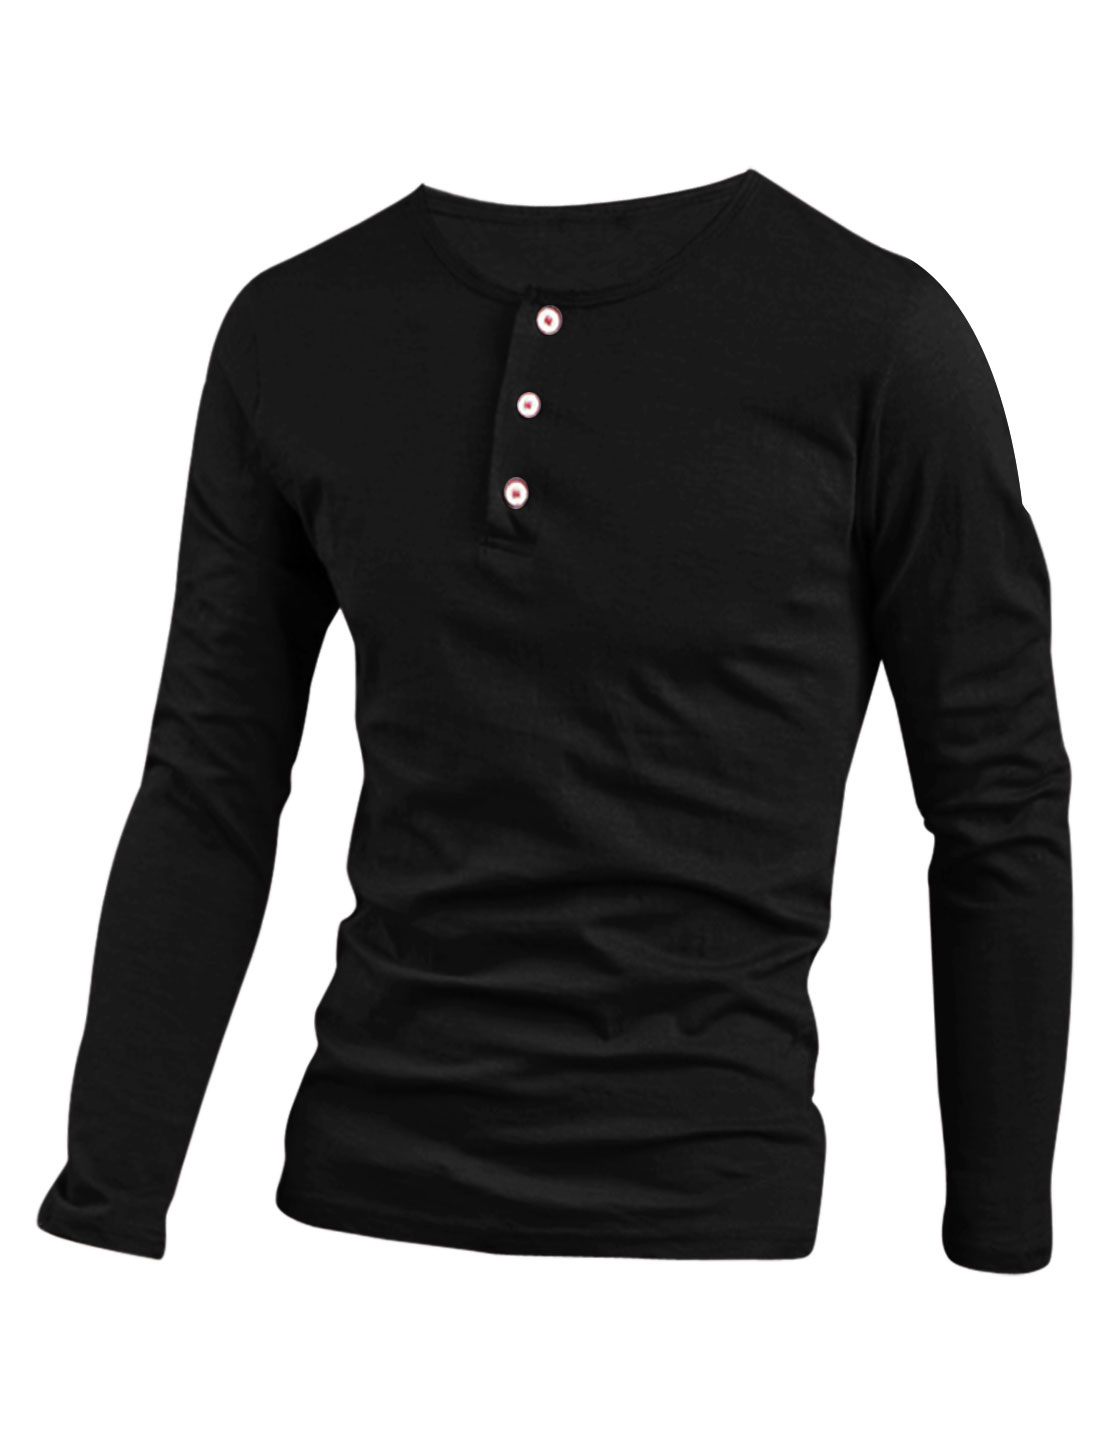 1/4 Placket Long Sleeve Casual Henley Shirt for Men Black M